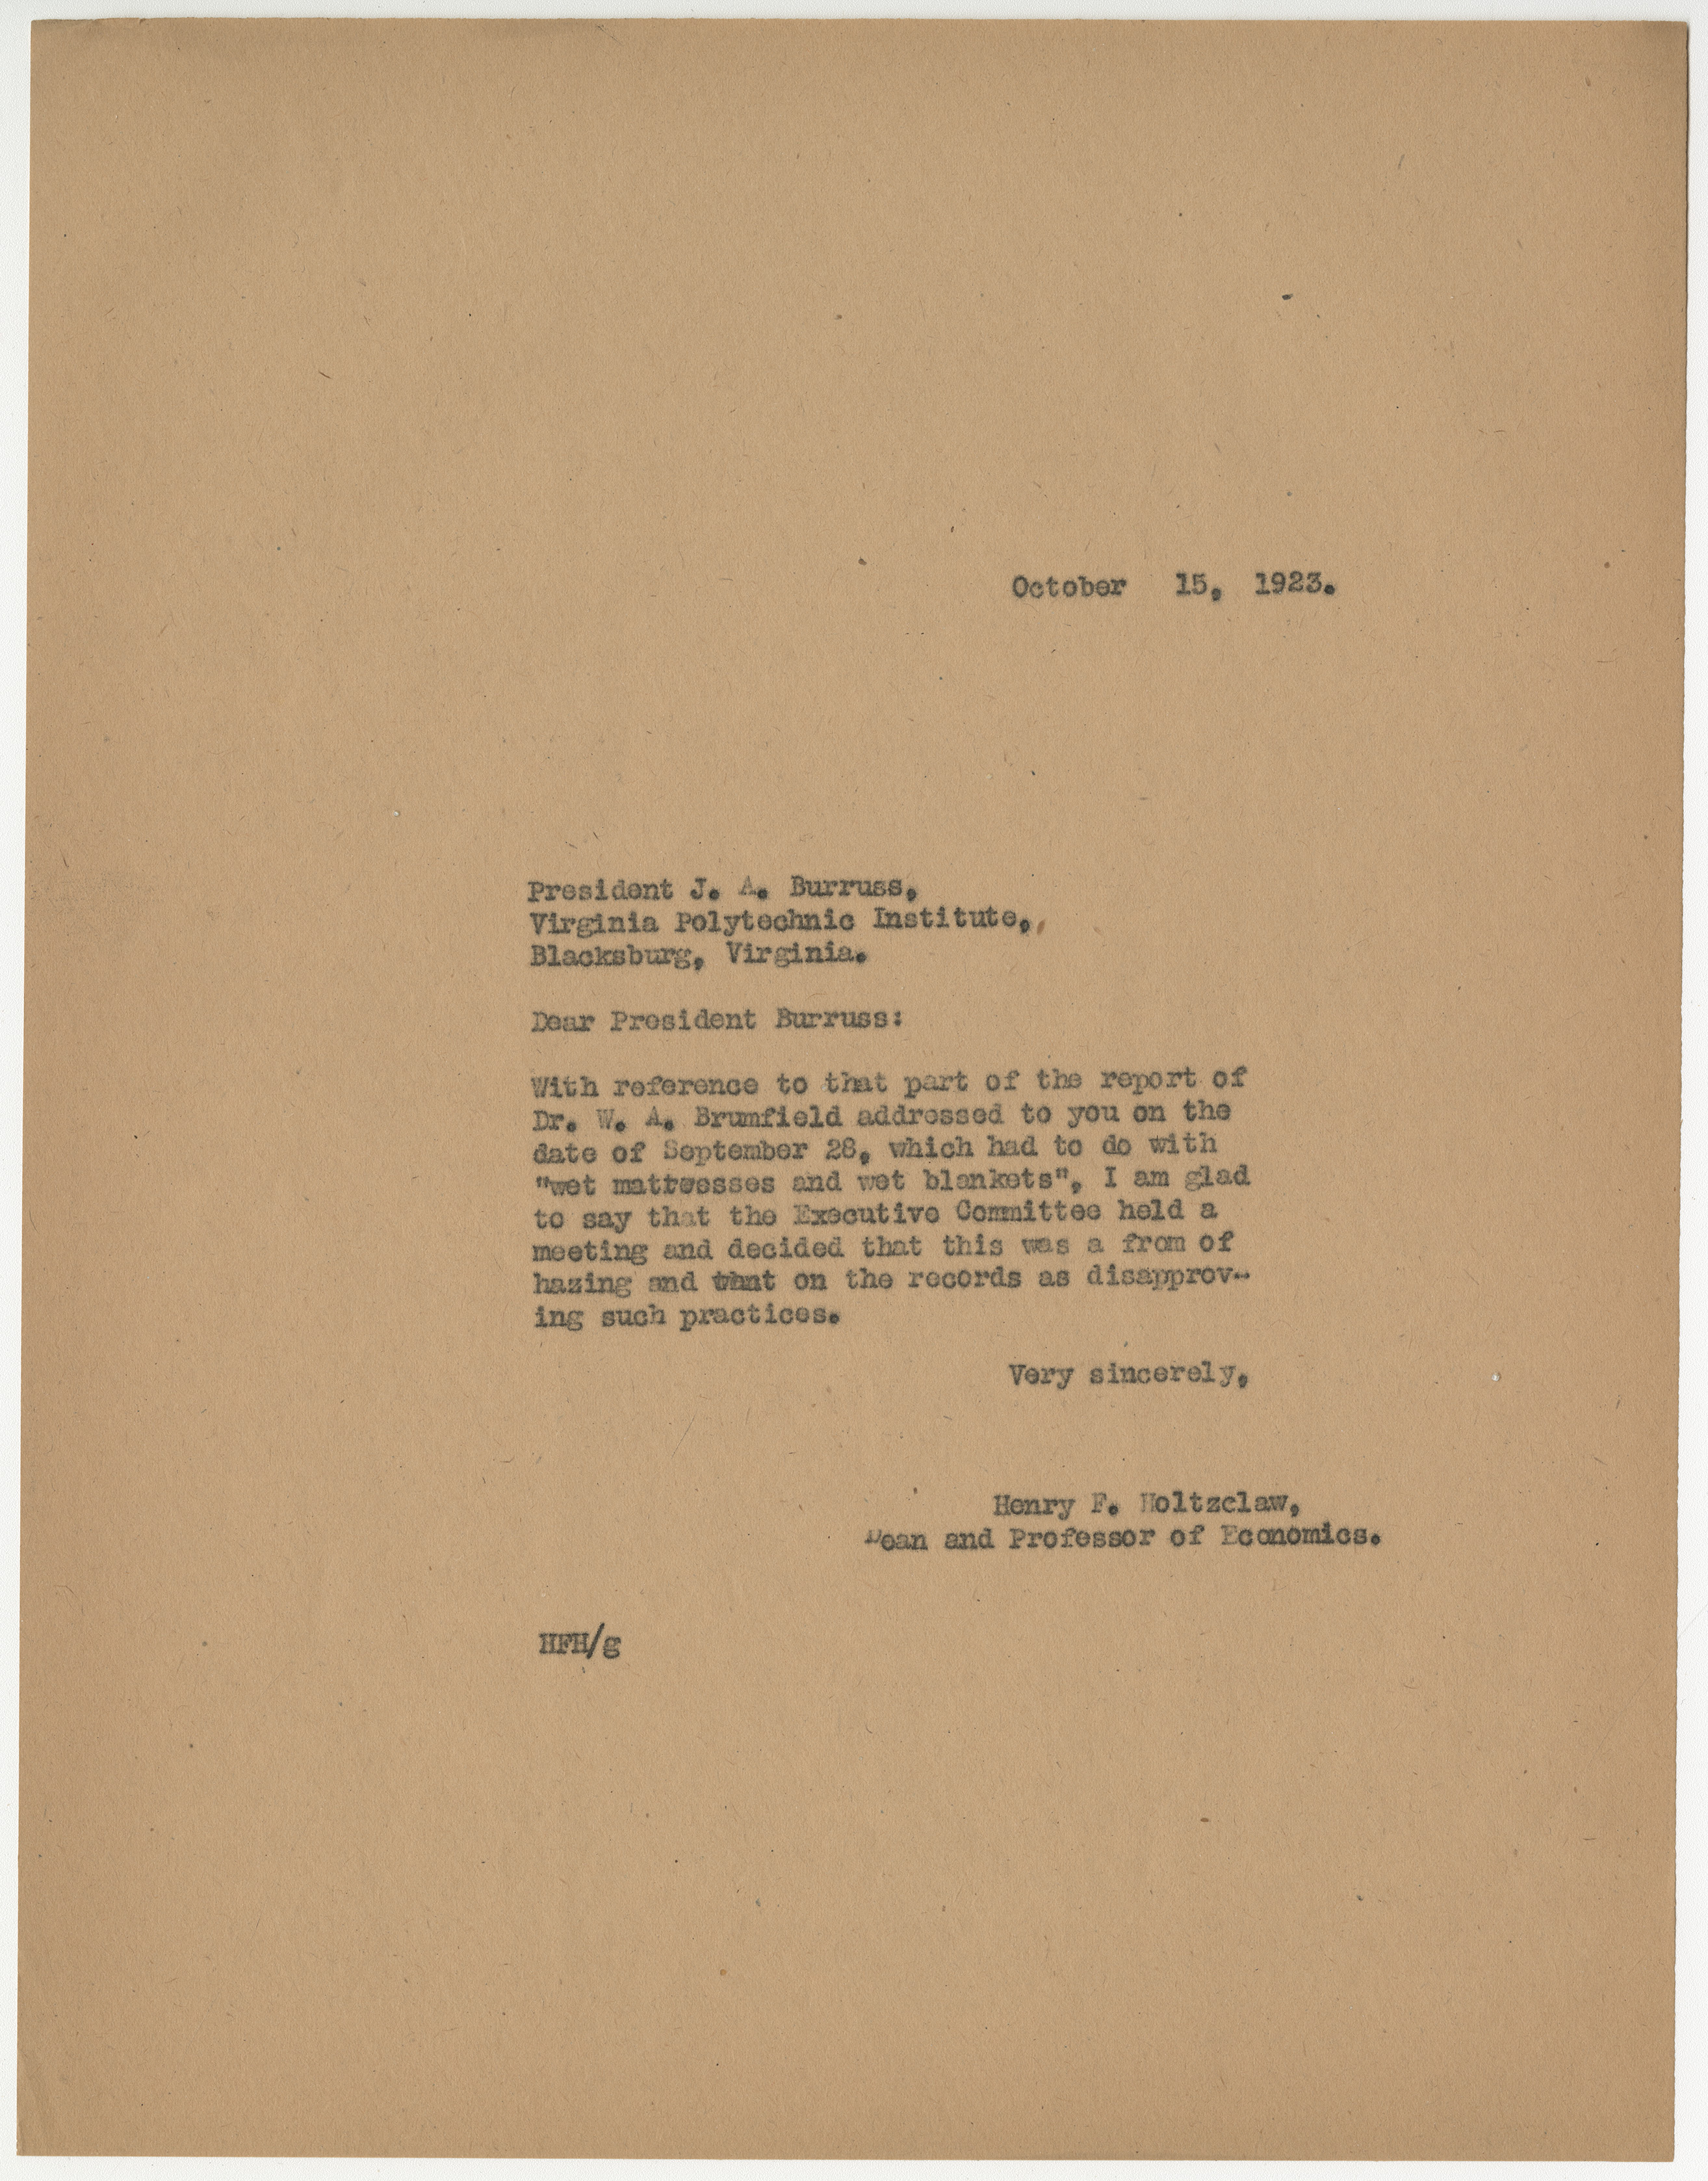 Letter from Henry F. Holtzclaw to President J. A. Burruss, regarding a hazing incident, October 15, 1923, from the Records of the Dean of Students, Henry F. Holtzclaw, RG 8/2a